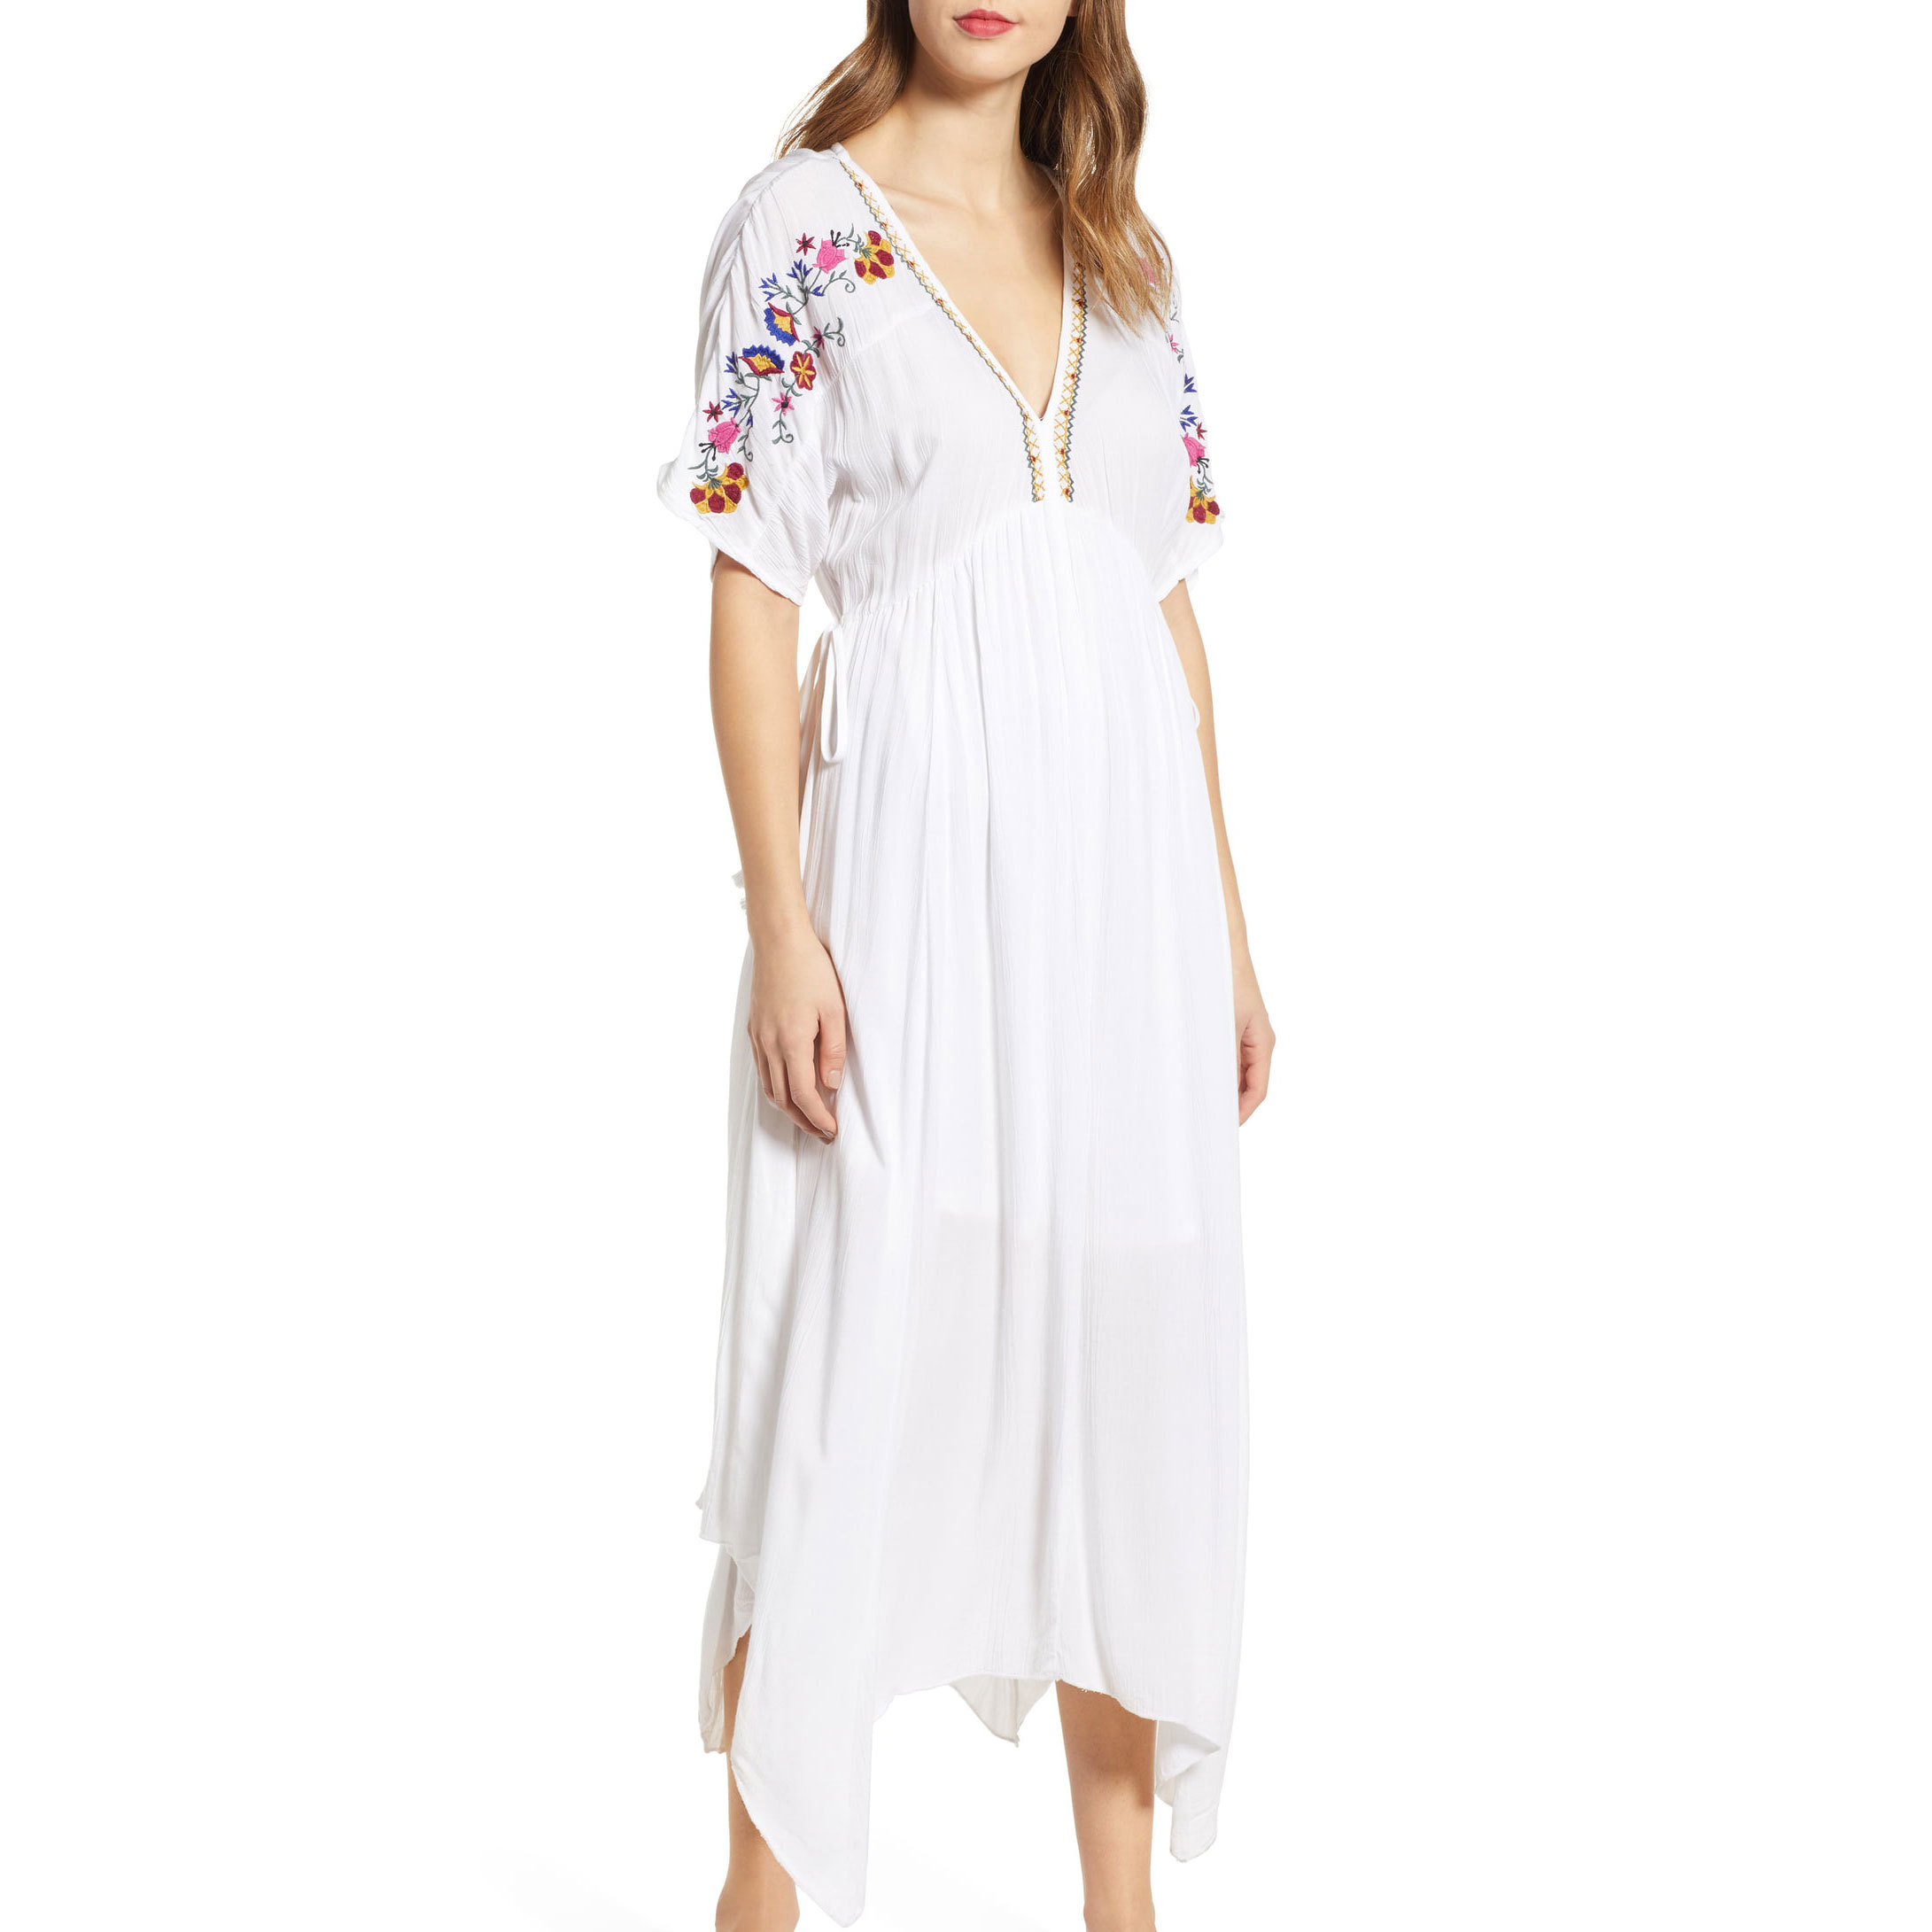 Band of Gypsies Cuba Embroidered Midi Dress Nordstrom photo